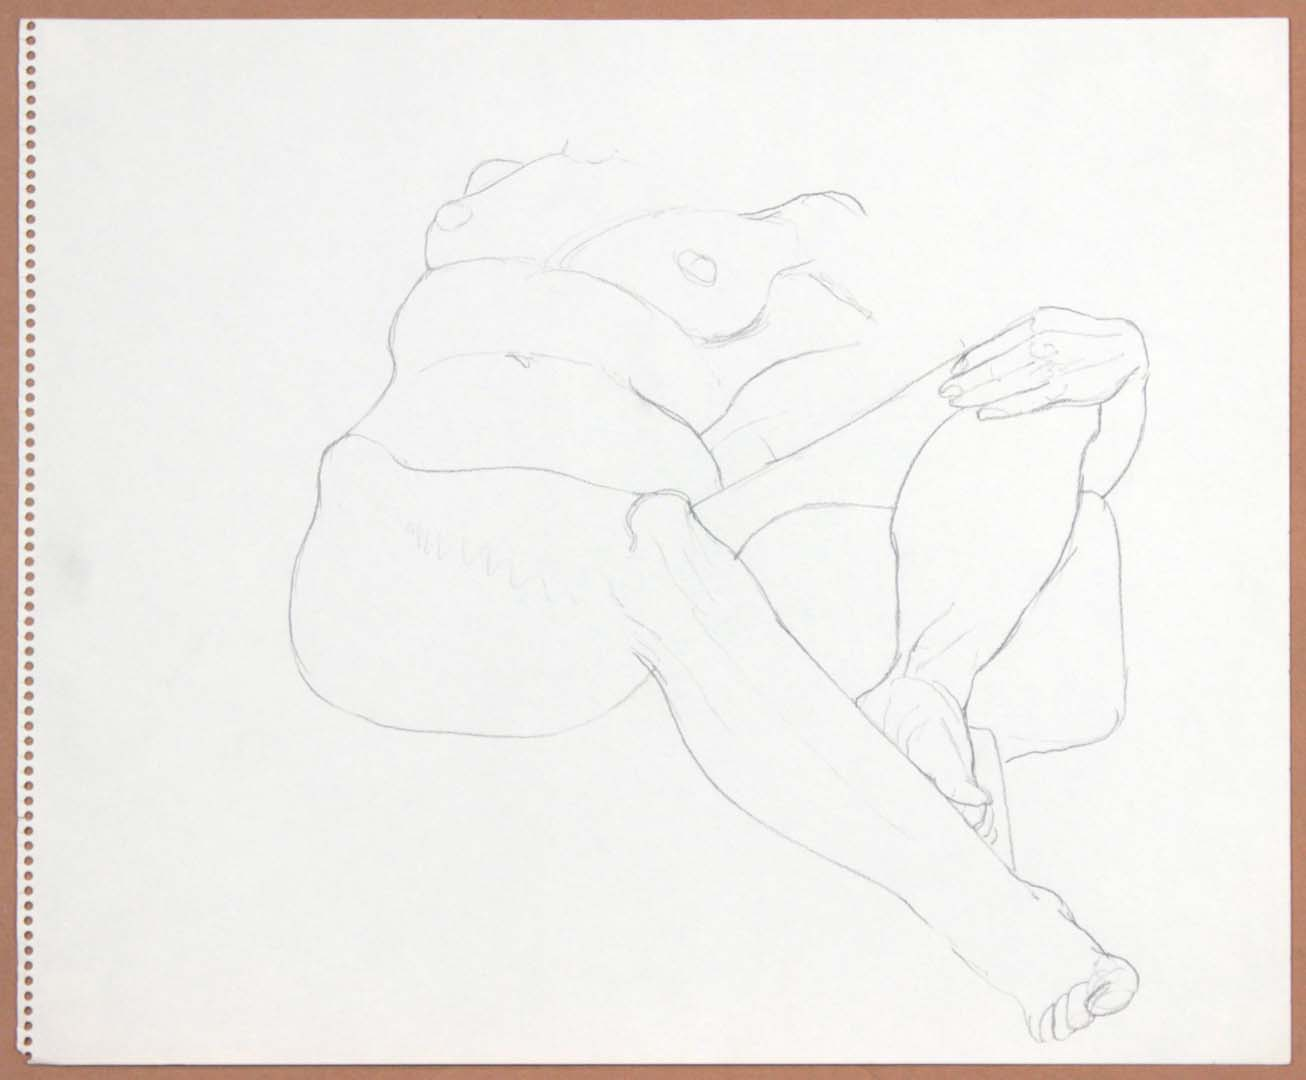 "Reclined Female with Leg Raised Pencil 14"" x 17"""